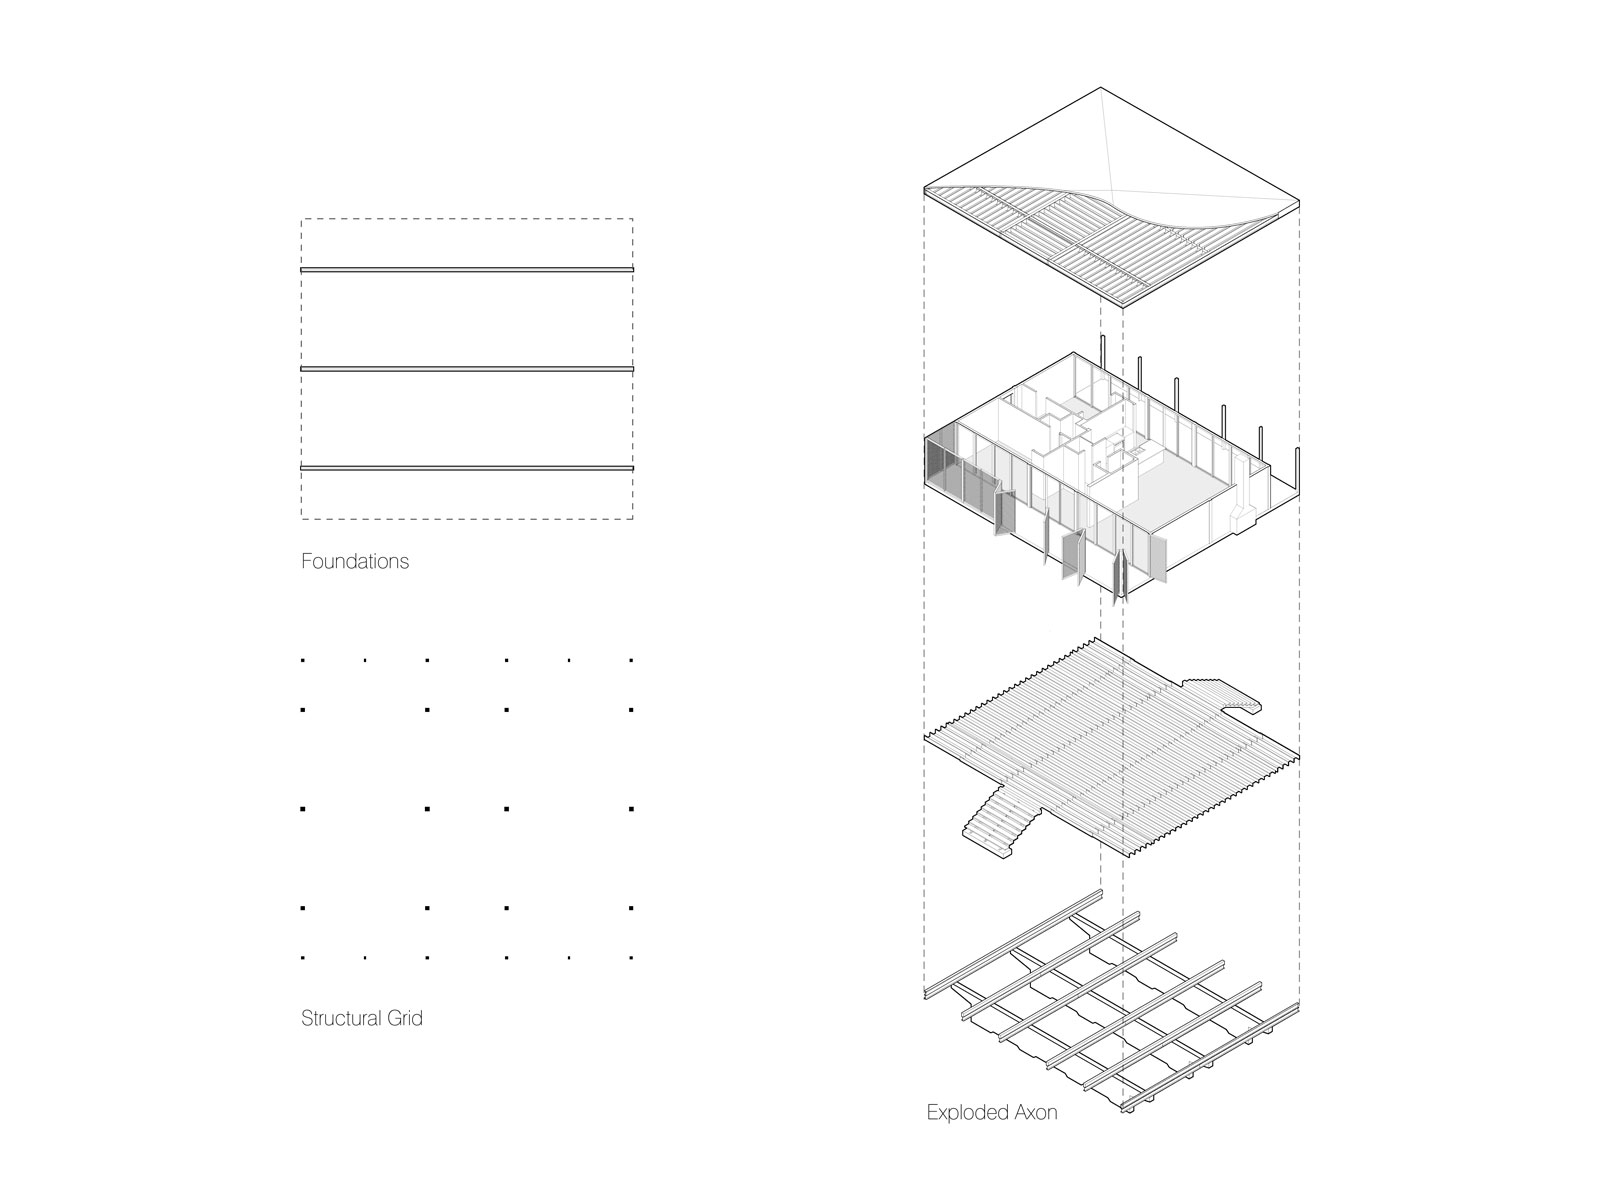 004 Structure Diagrams And Explode 01 01 Casalibrary